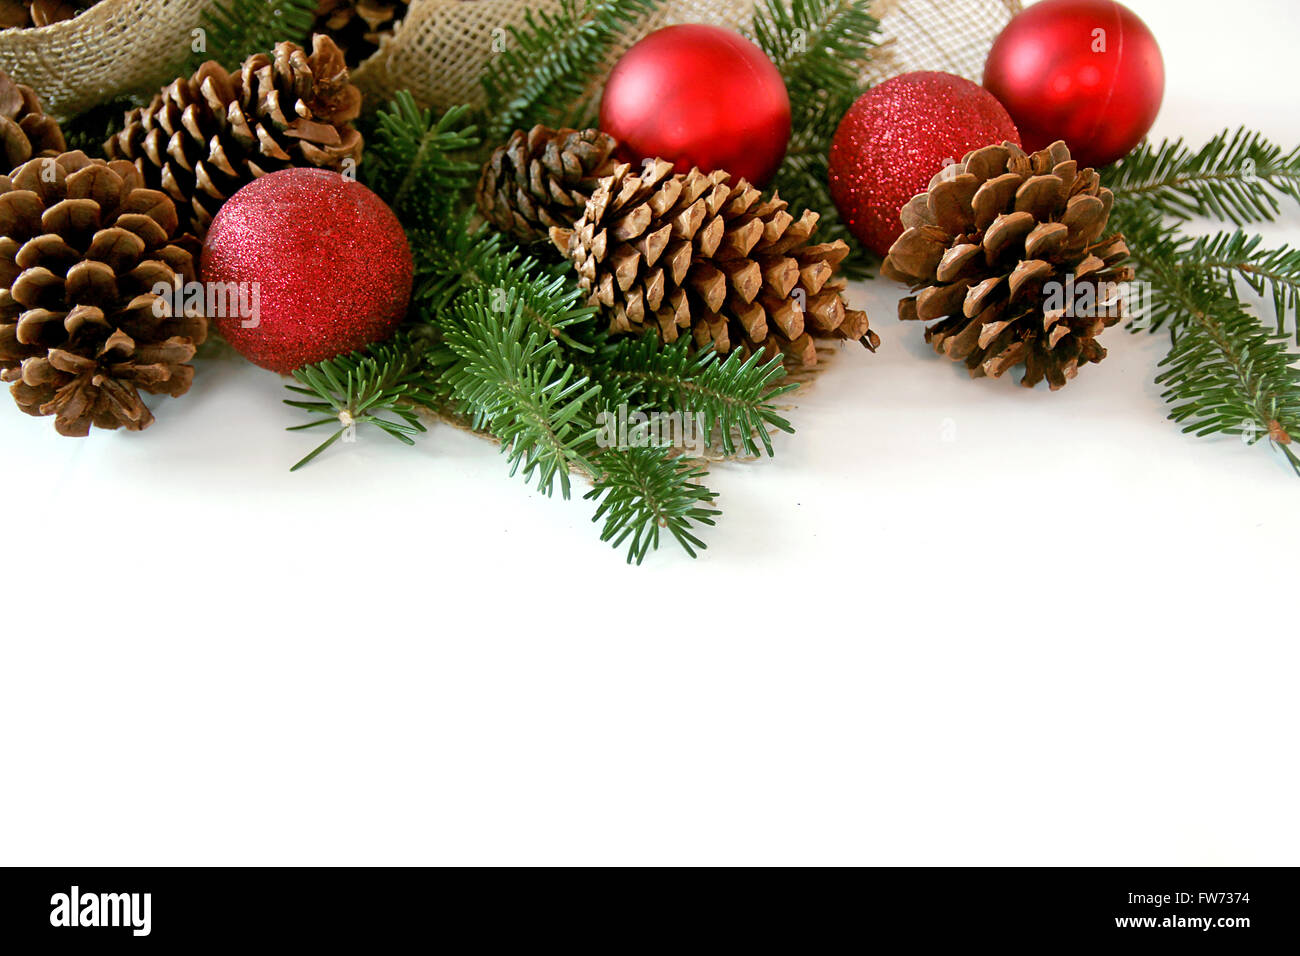 Red Christmas Tree ornaments, pine cones, evergreen branches, and ...